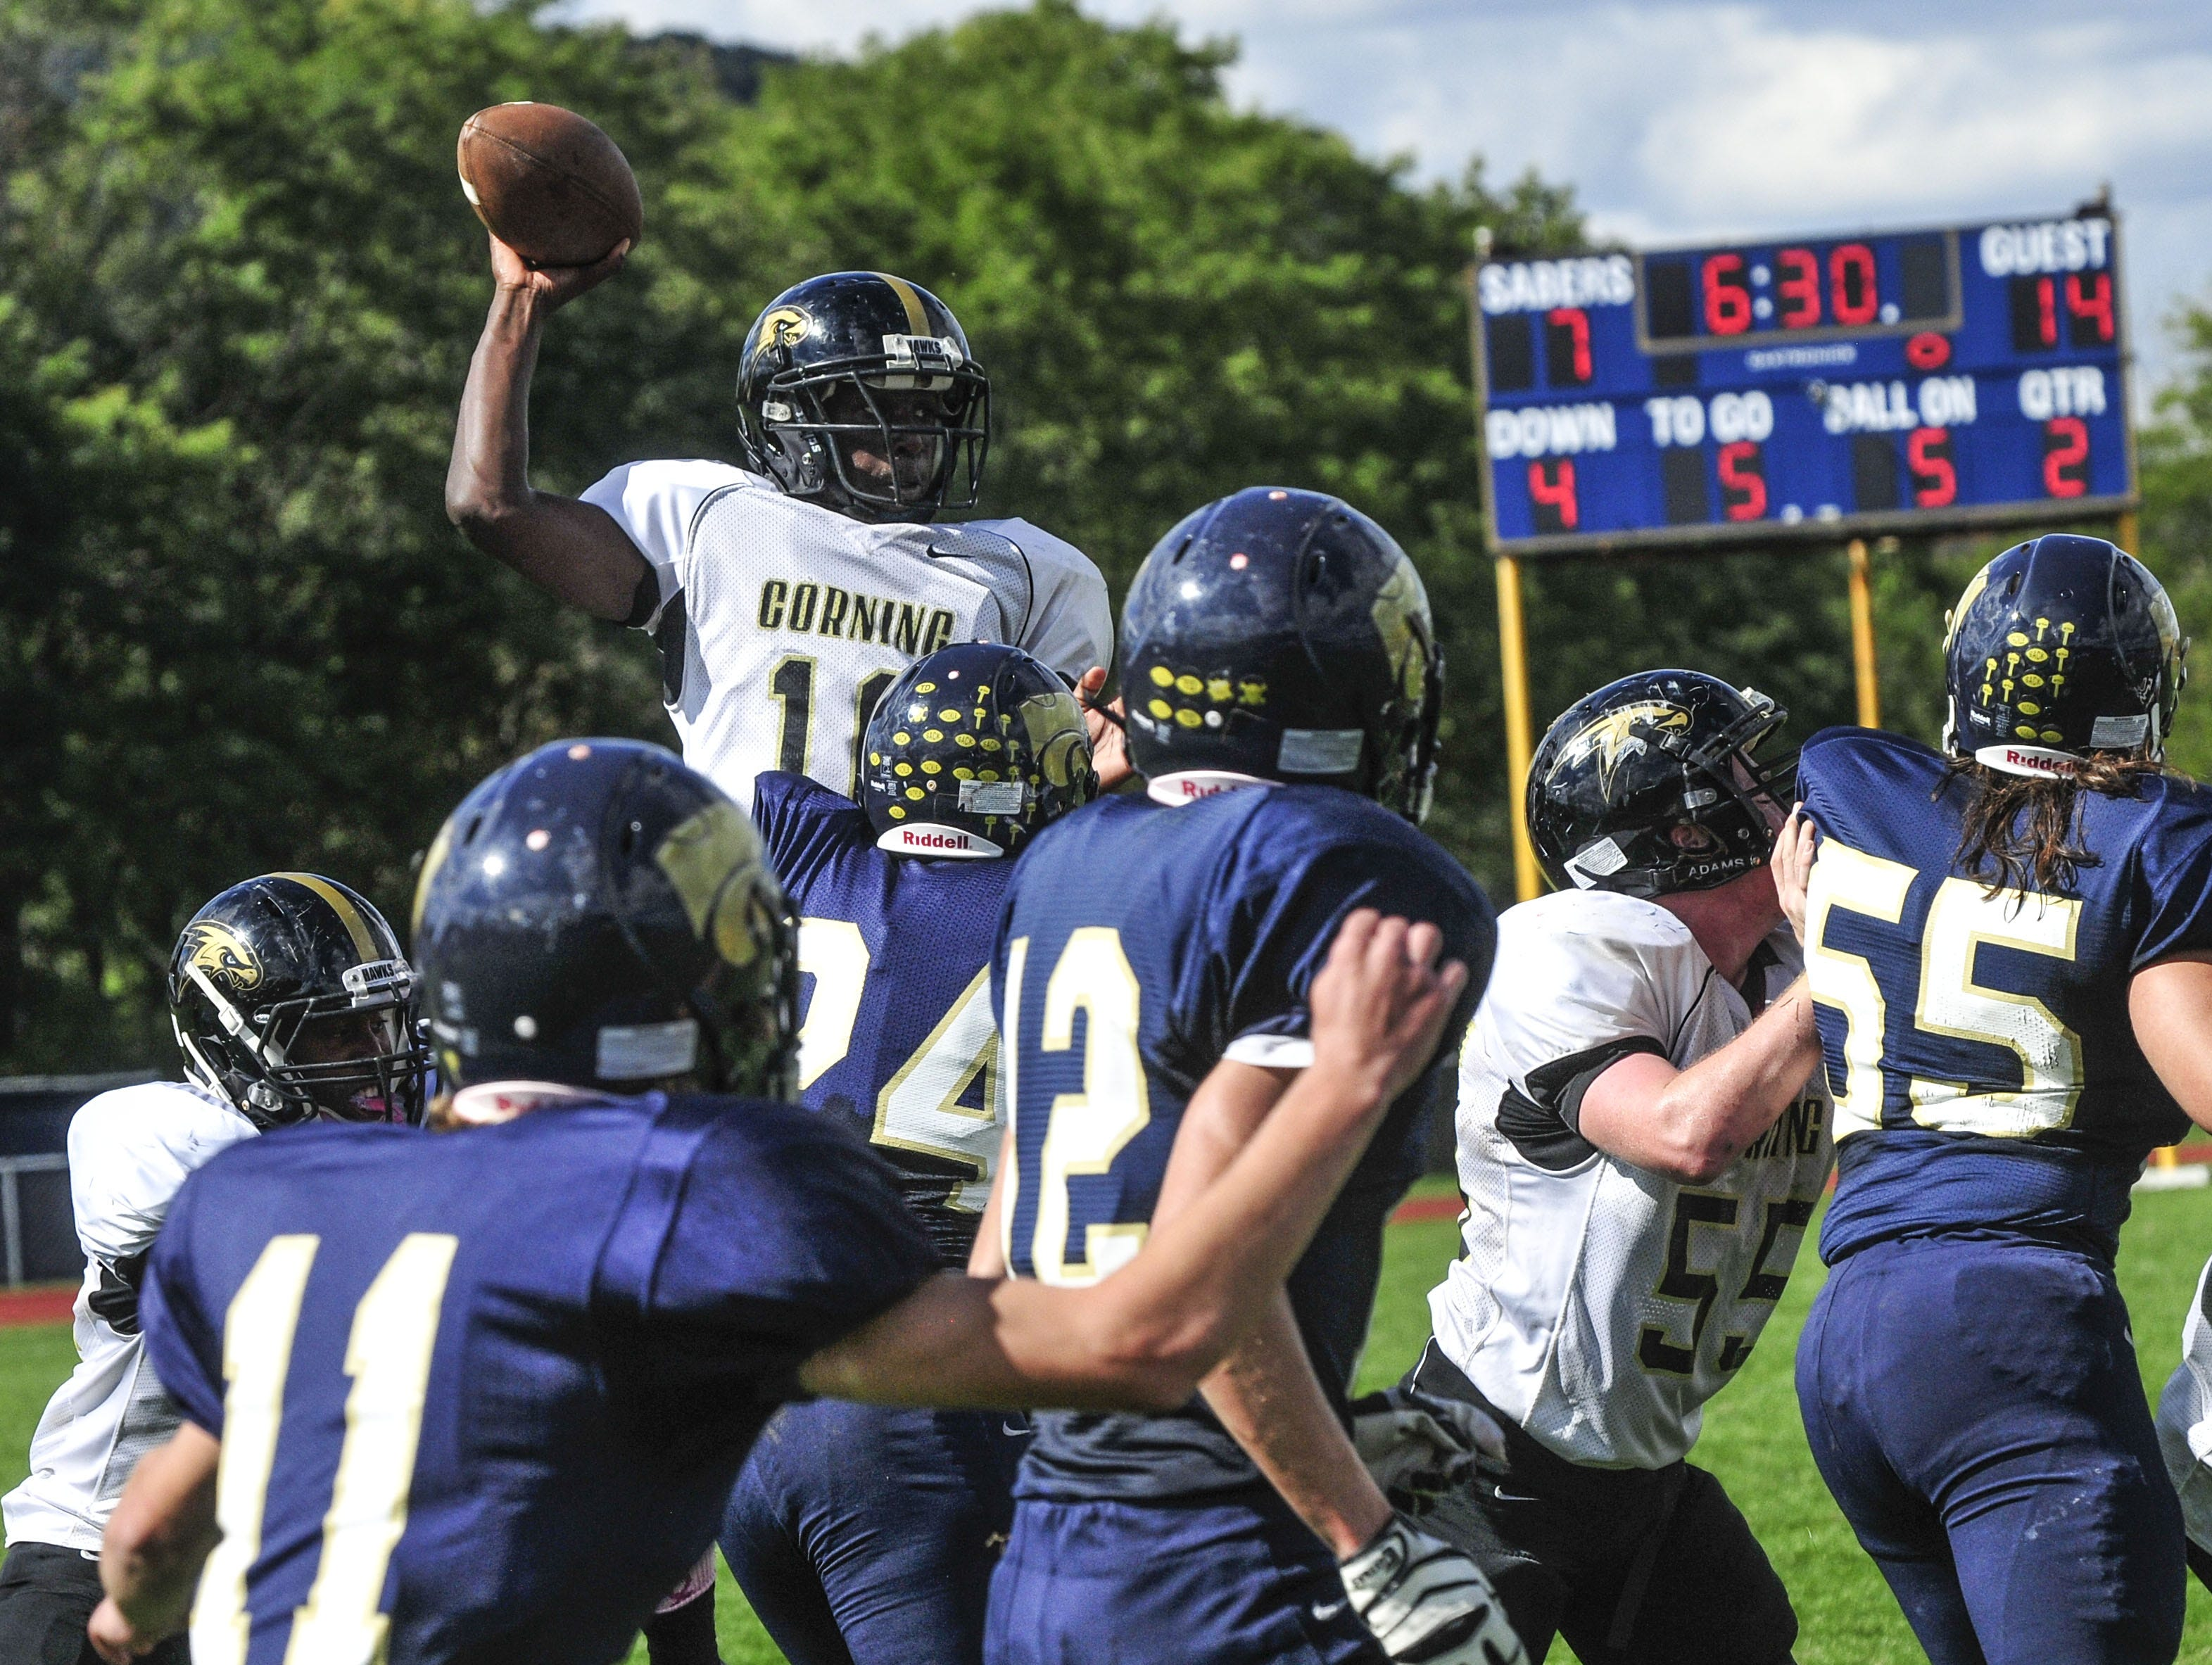 From 2013: Corning's Adarius France jumps to pass over the Susquehanna Valley defenders and connect with Sam Crusha for a touchdown Saturday.